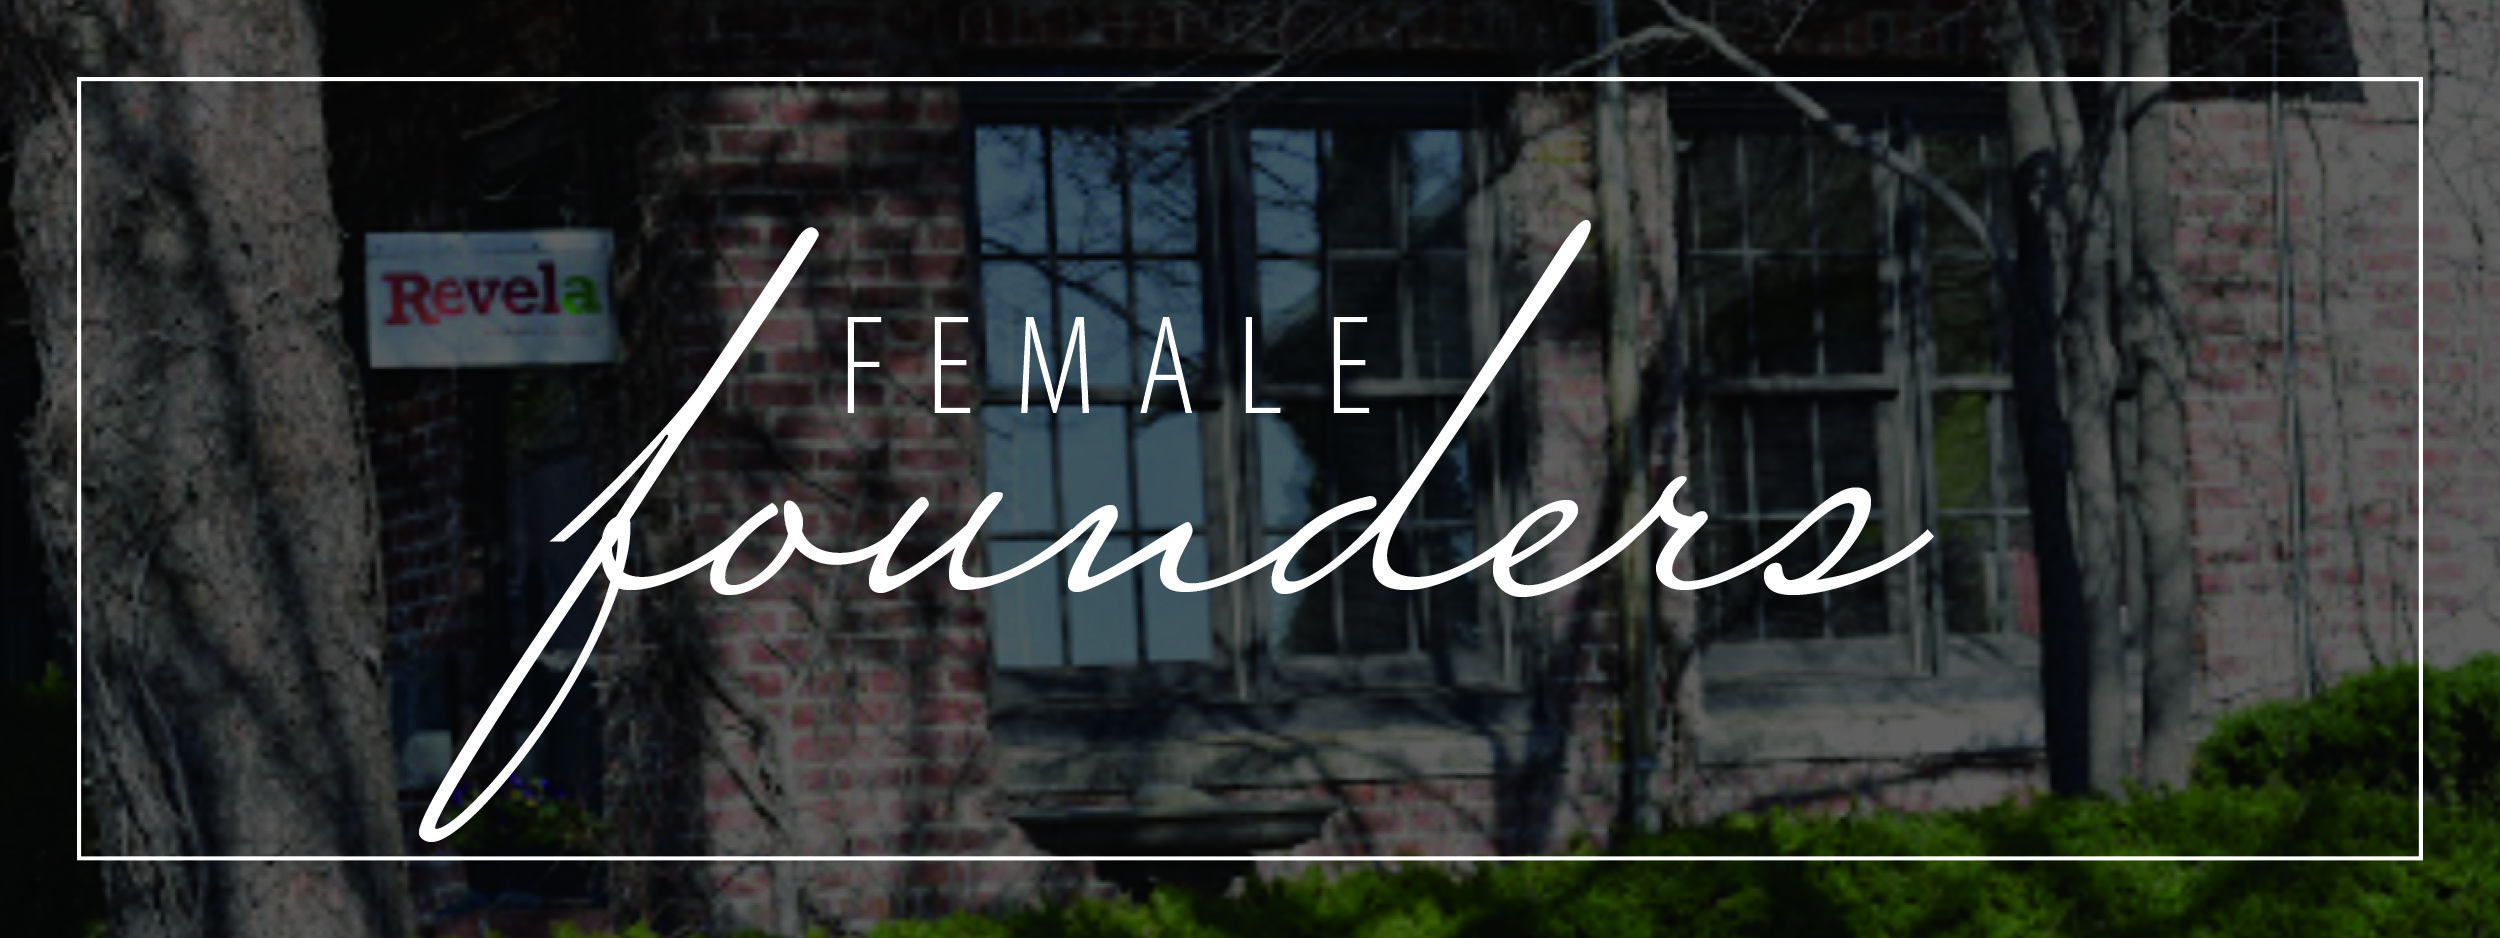 female founders written over image of outside of Revela